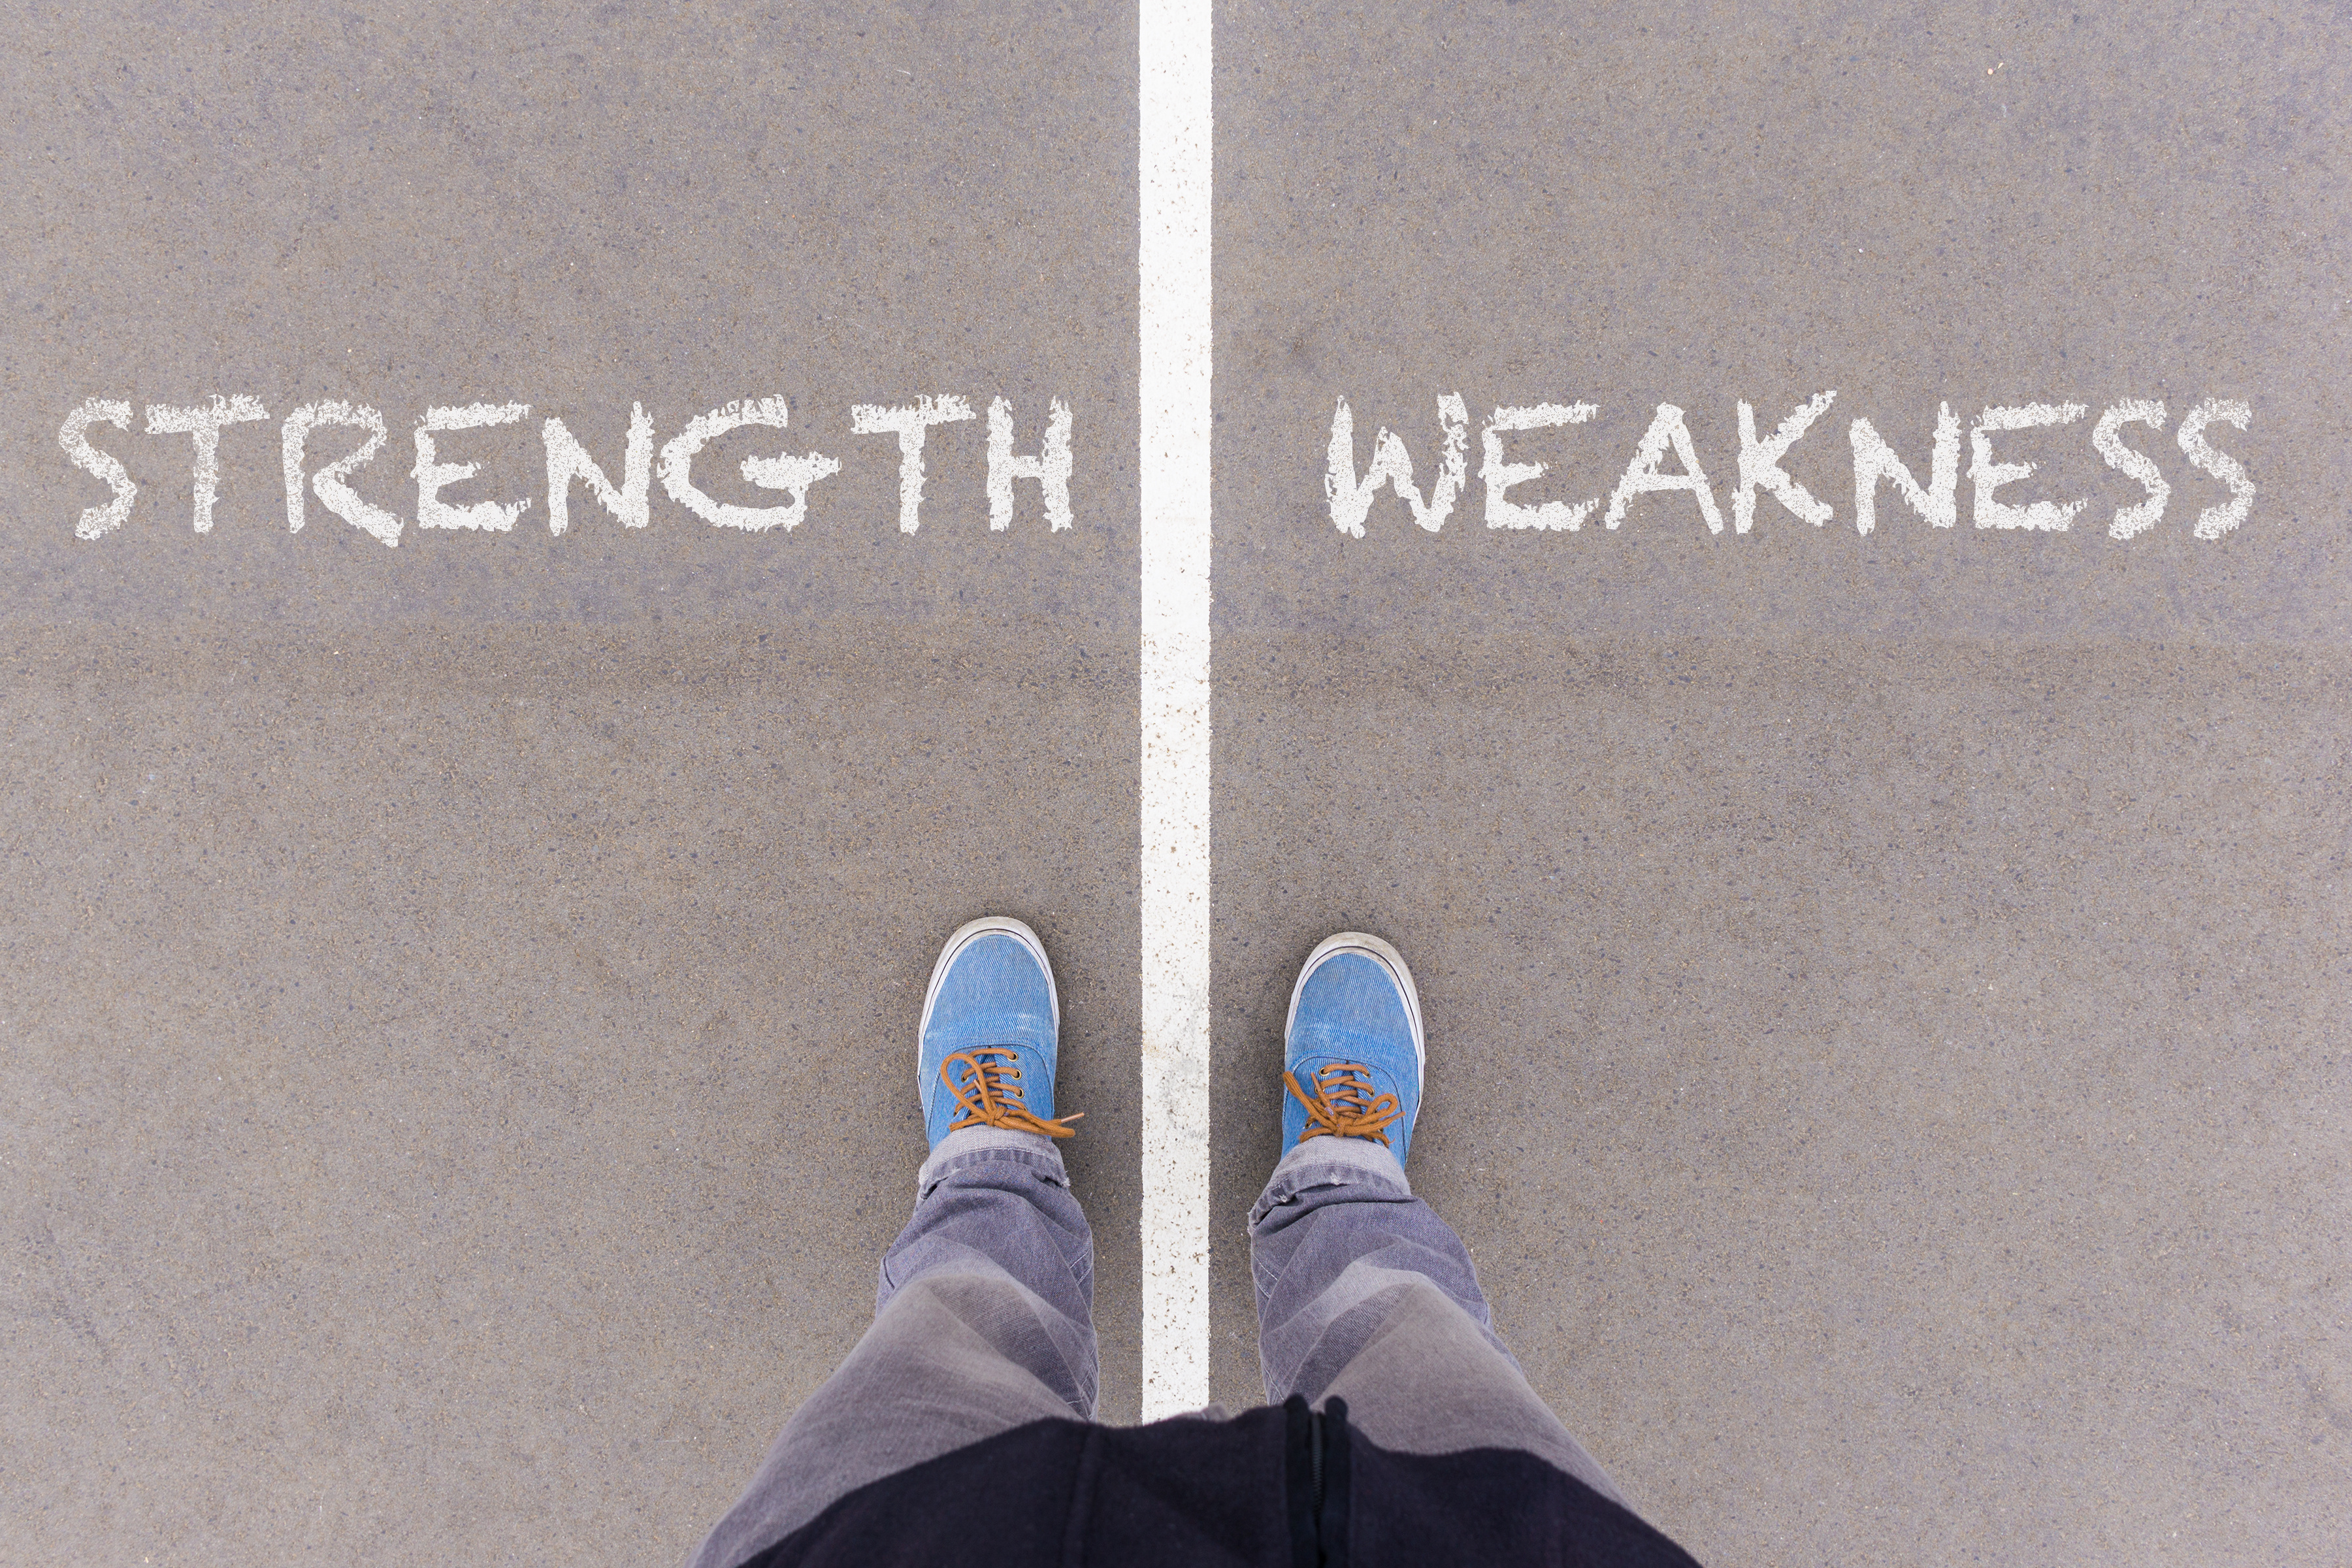 Strength and weakness text on asphalt ground, feet and shoes on